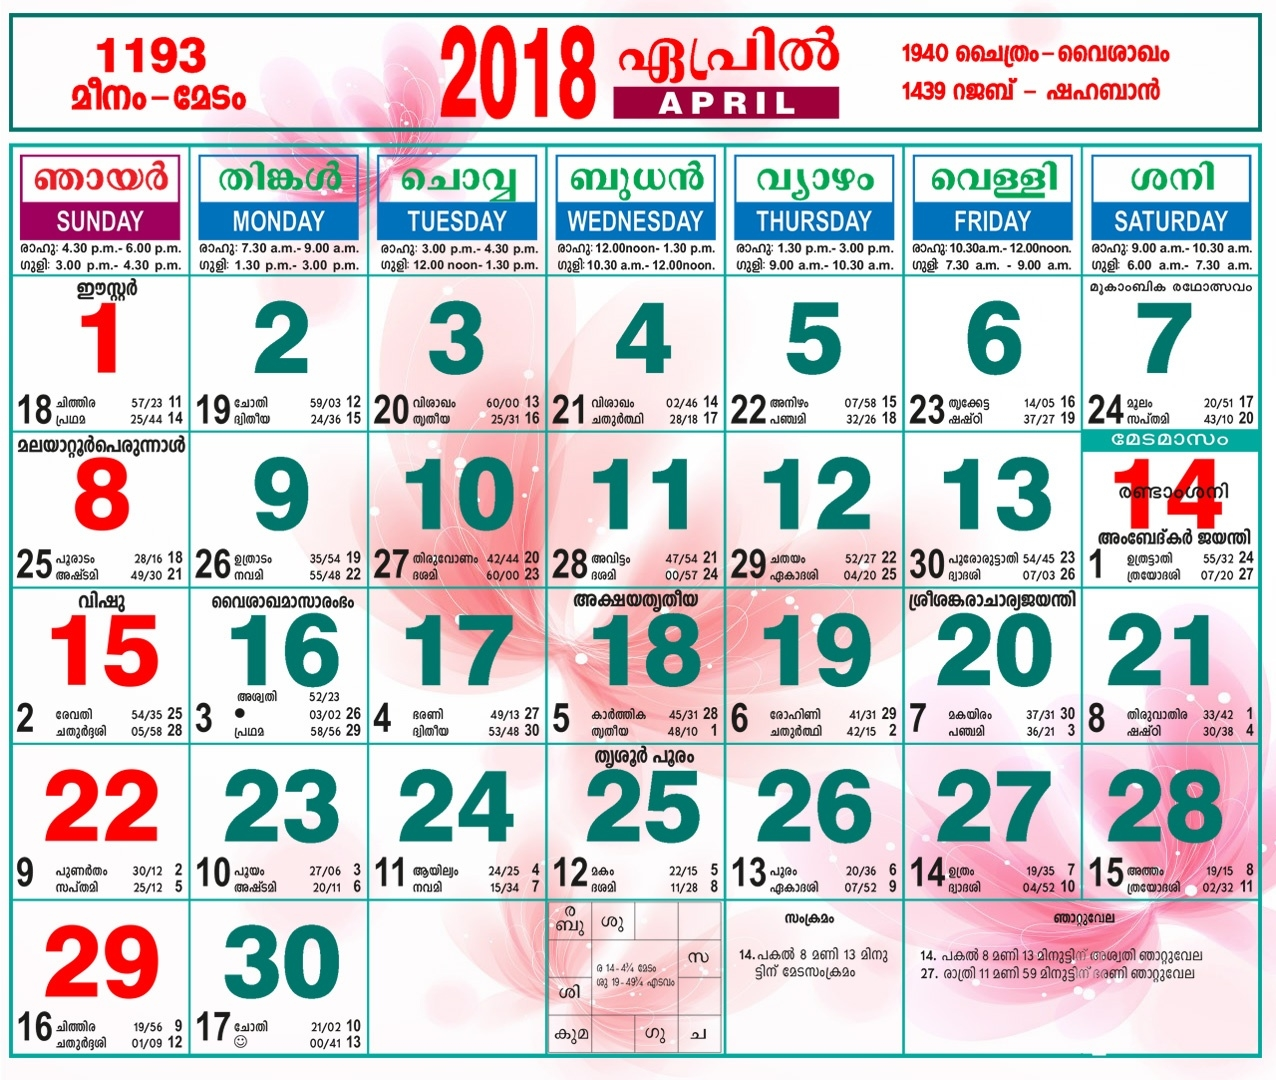 April 2018 Calendar Tamil - Free June 2018 Calendar Printable Blank  Vedic Calendar For Sep 27 1940